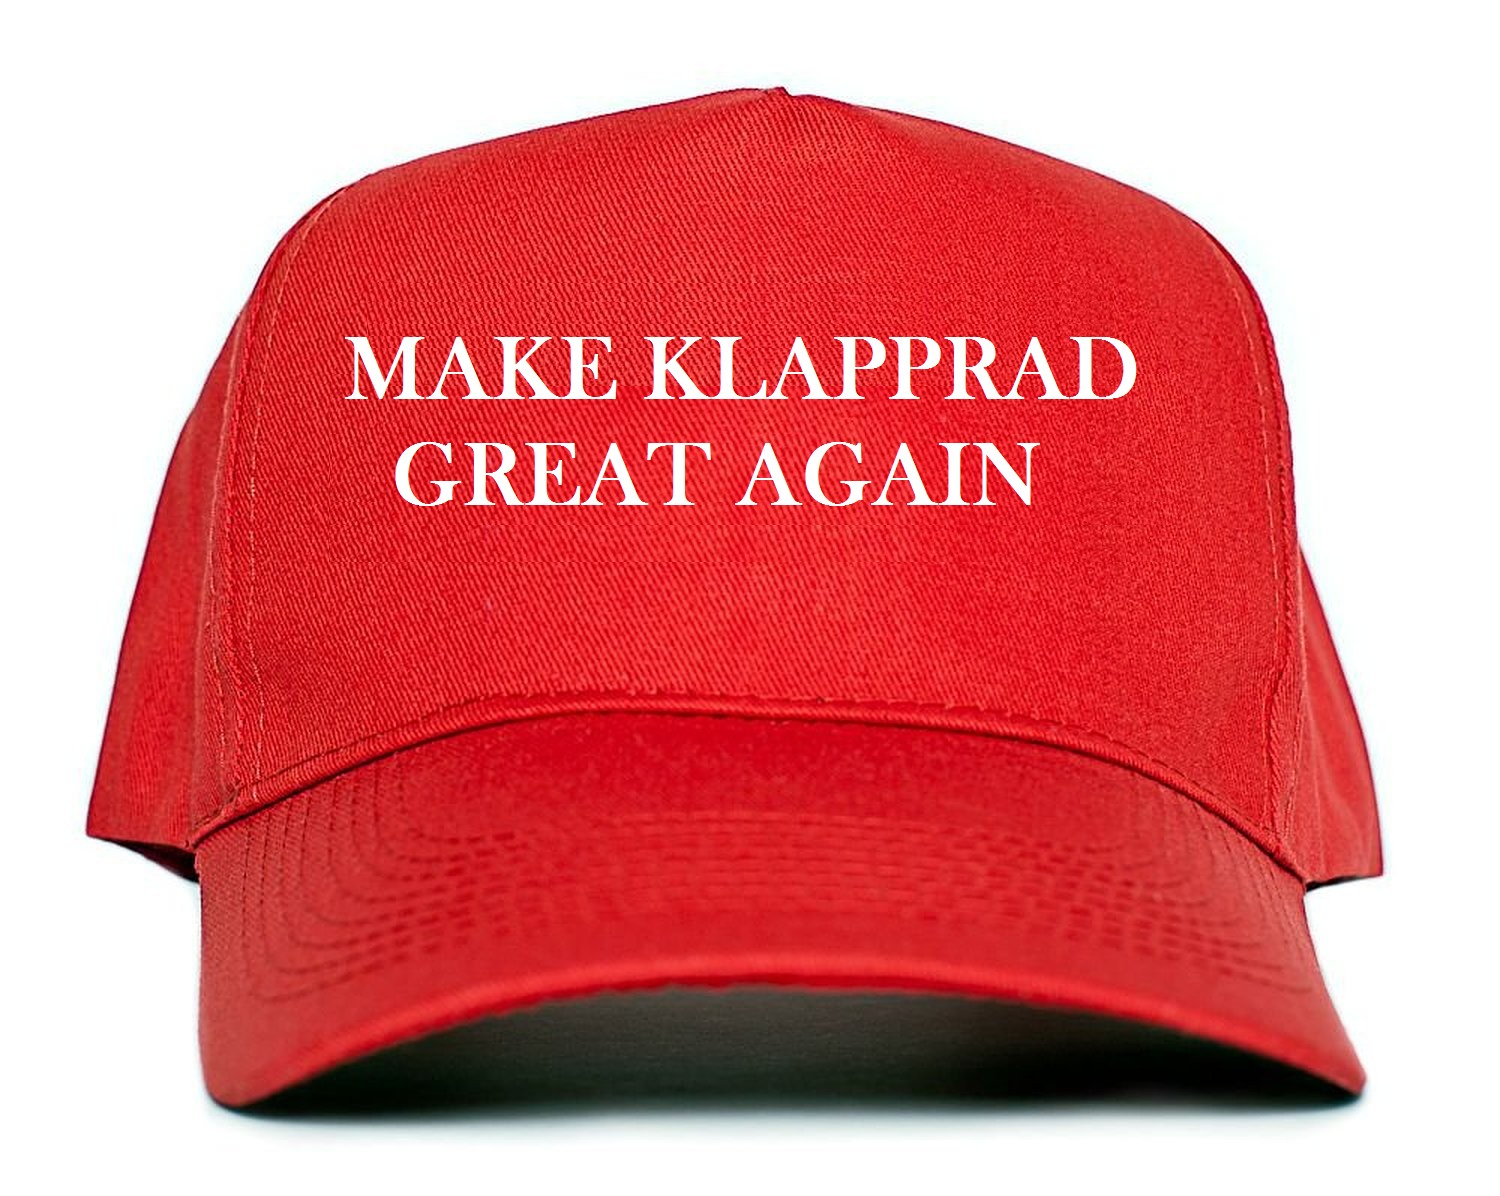 make-klapprad-great-again